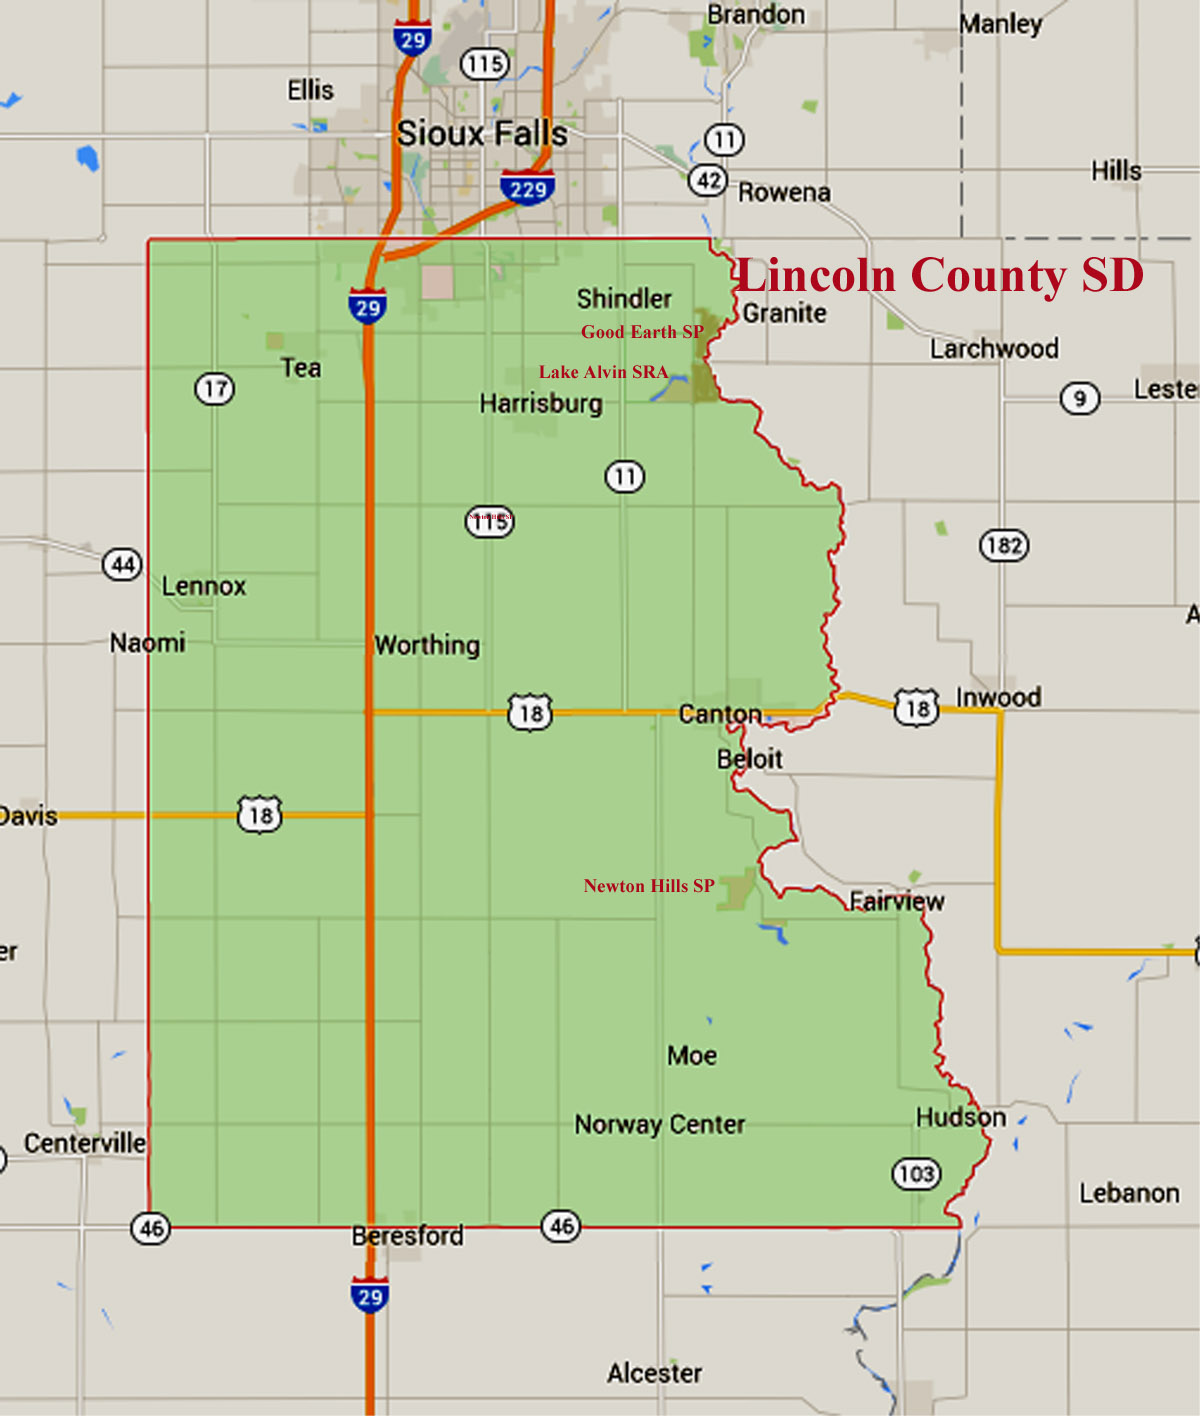 minnehaha county County population in 2016: 187,318 (86% urban, 14% rural) it was 148,281 in 2000 county owner-occupied with a mortgage or a loan houses and condos in 2010: 32,558 county owner-occupied free and clear houses and condos in 2010: 11,009 county owner-occupied houses and condos in 2000: 37,512.